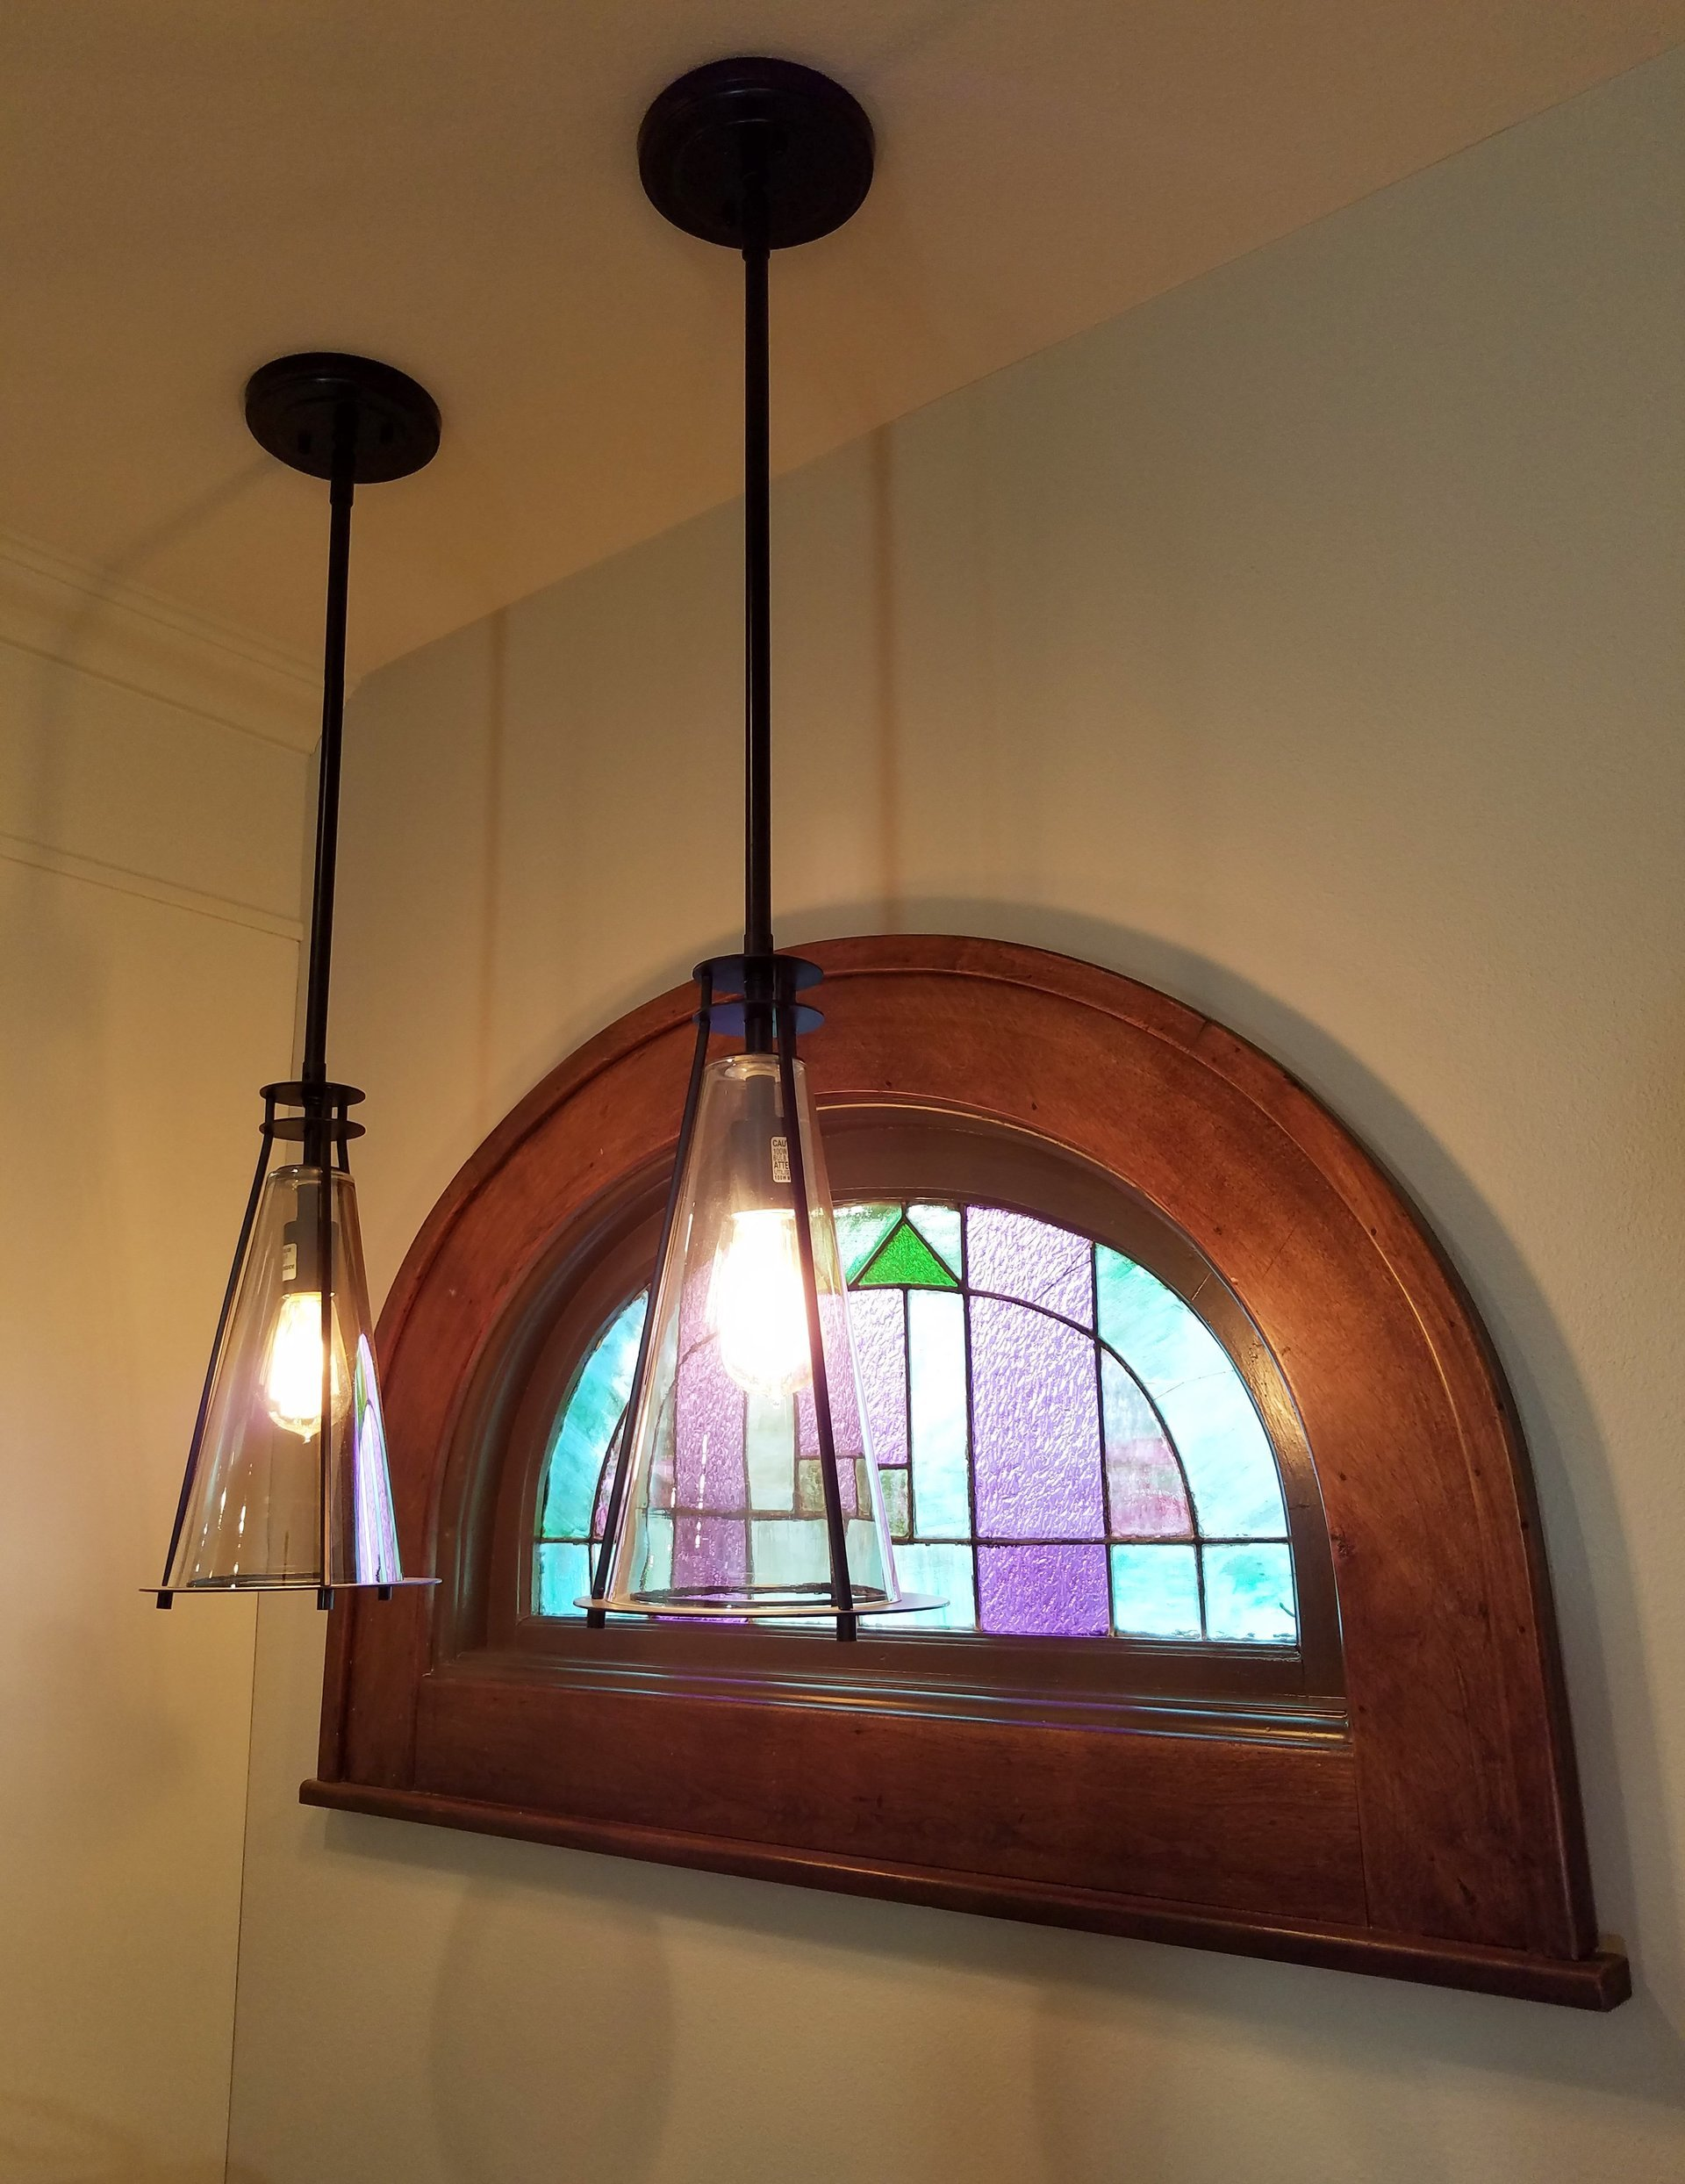 Emerson 1-Light Mini Pendant by Trent Austin Design, half-round stained glass window